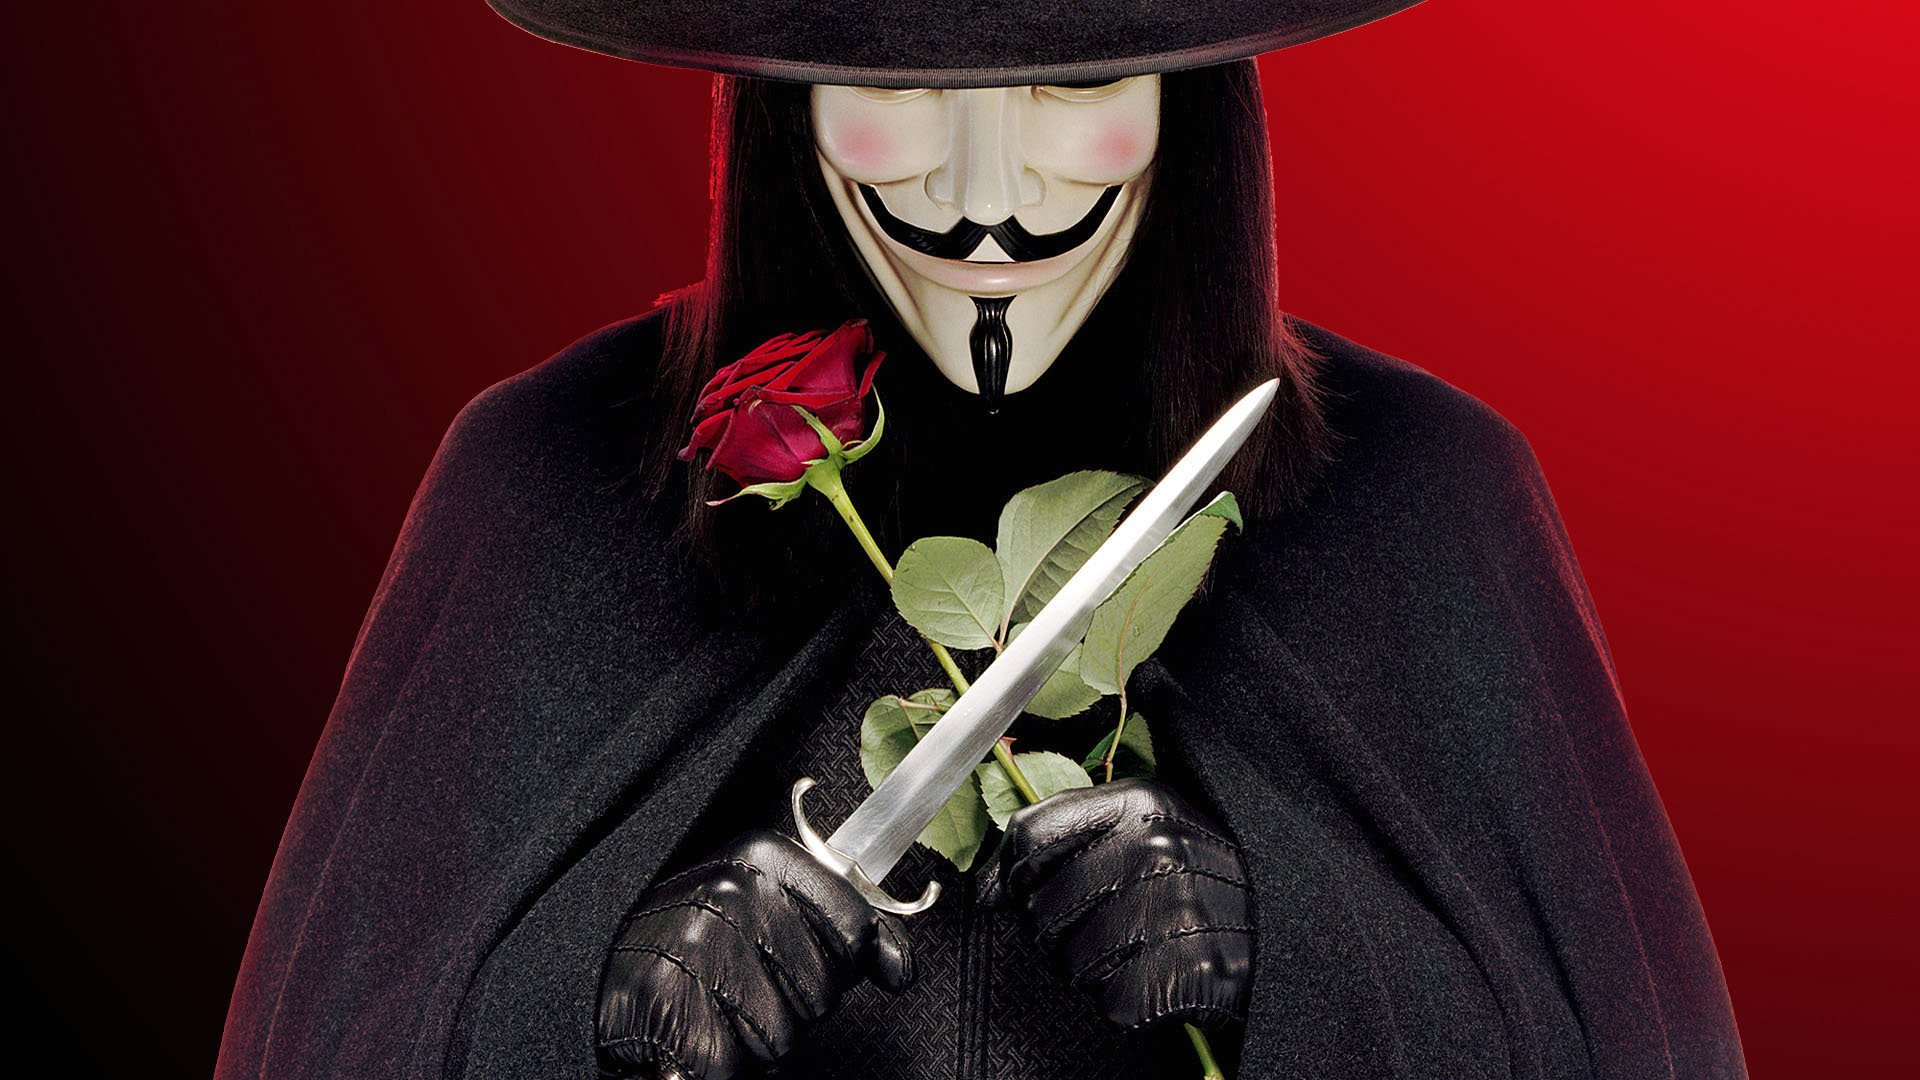 V for vendetta wallpaper hd - V wallpaper hd ...